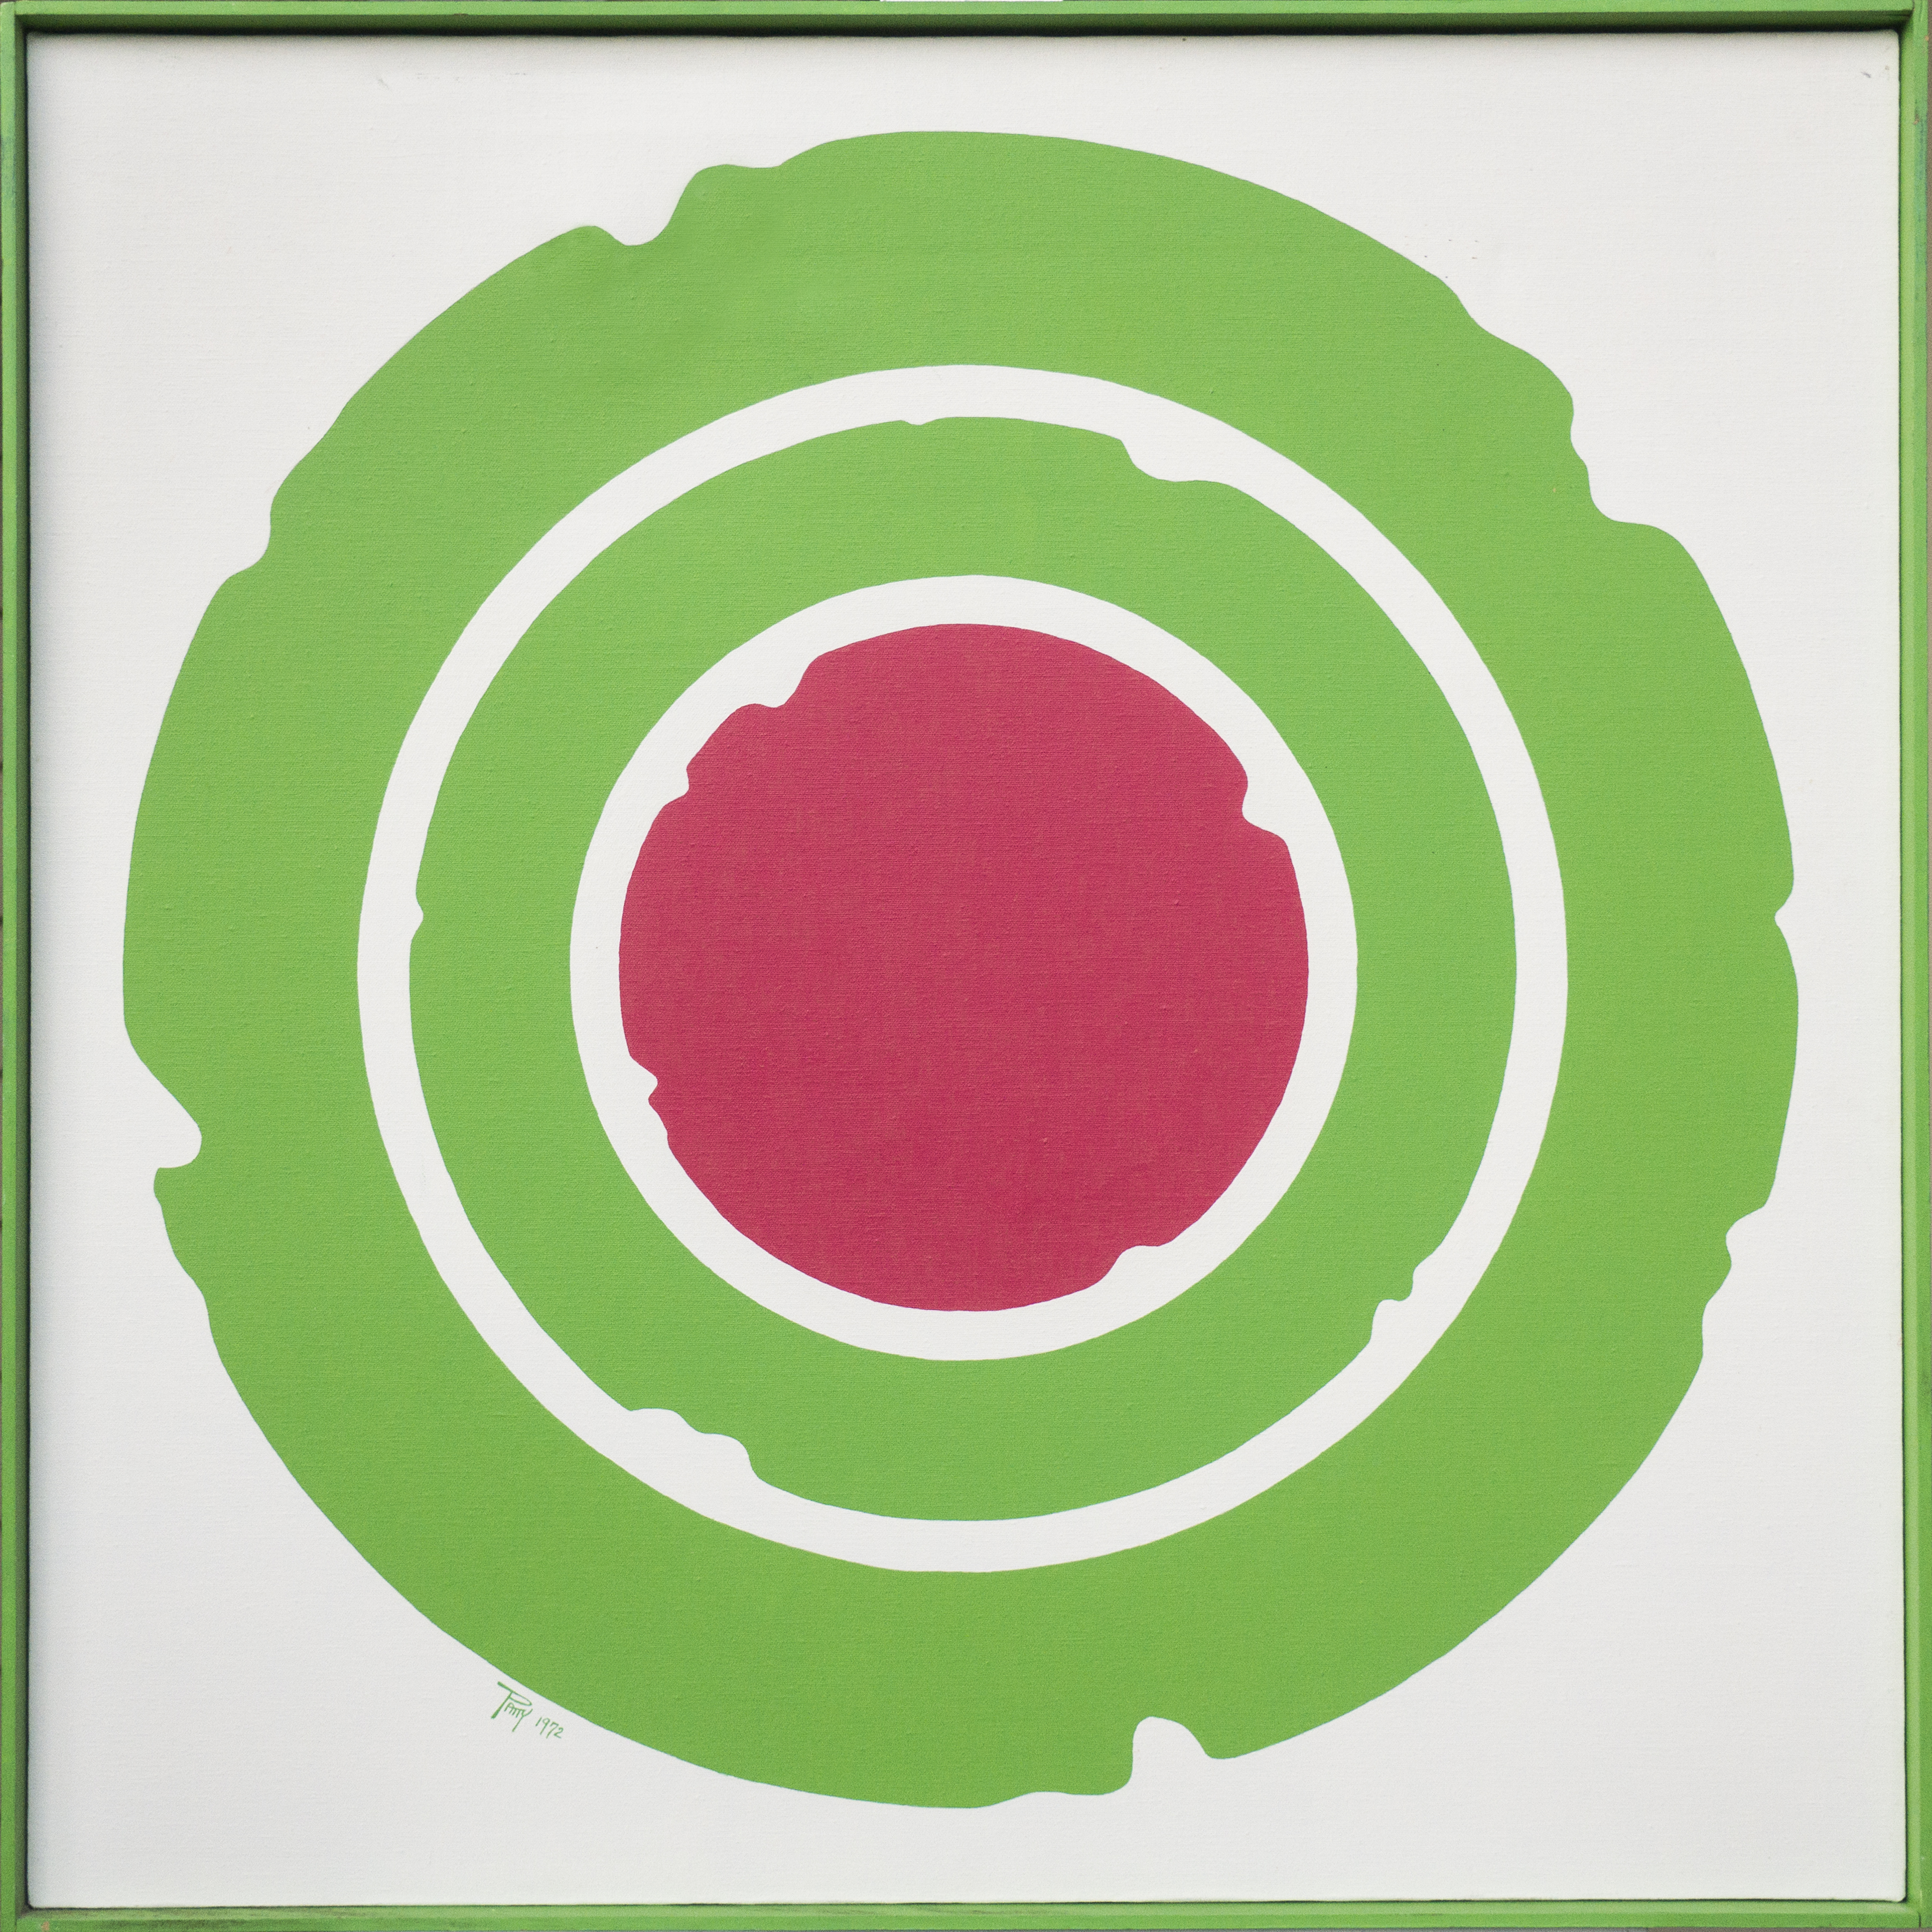 Green Concentric